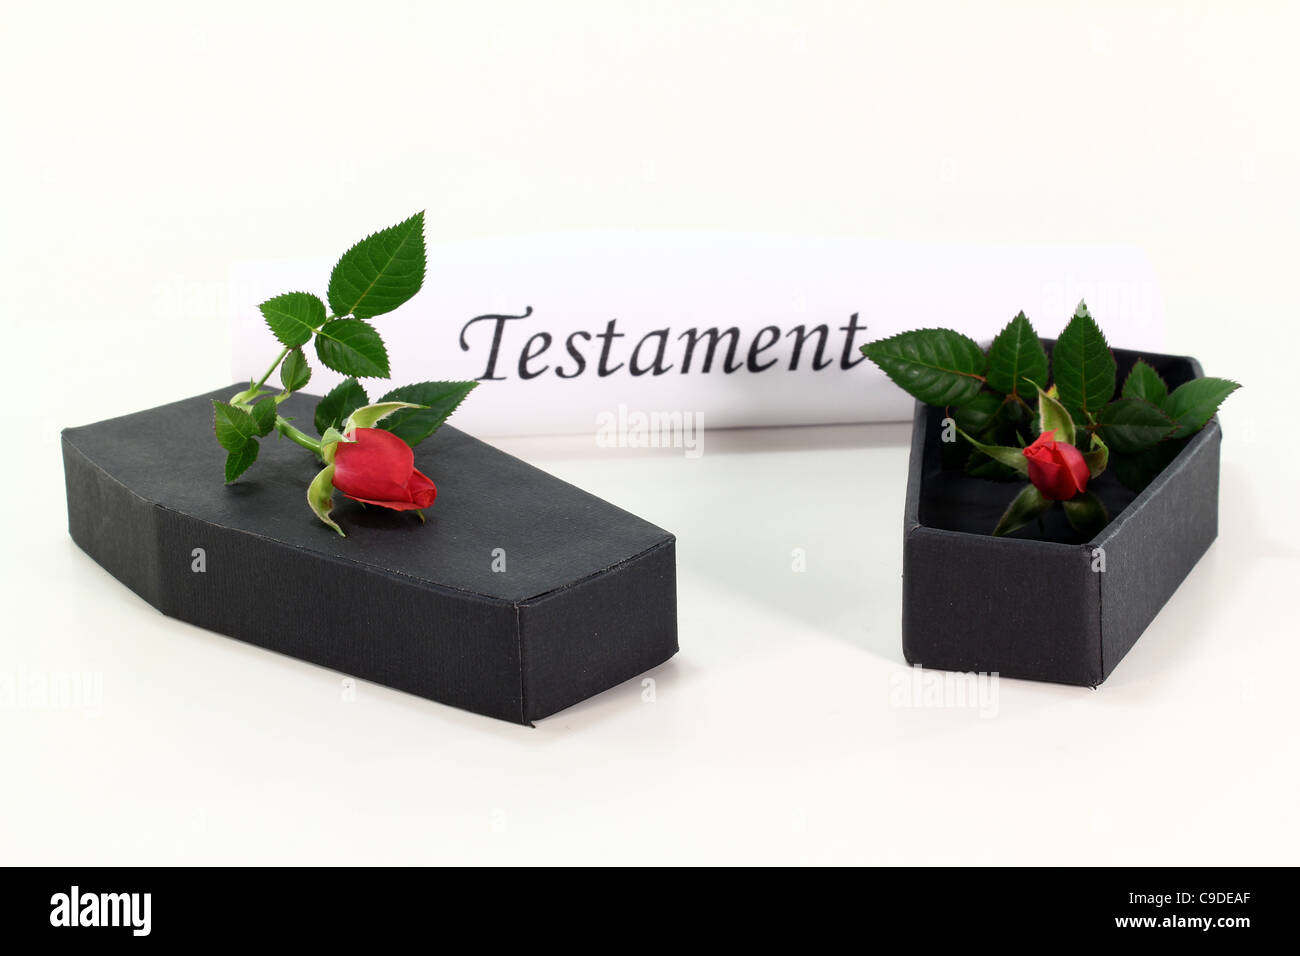 Testament role with coffins and red roses - Stock Image